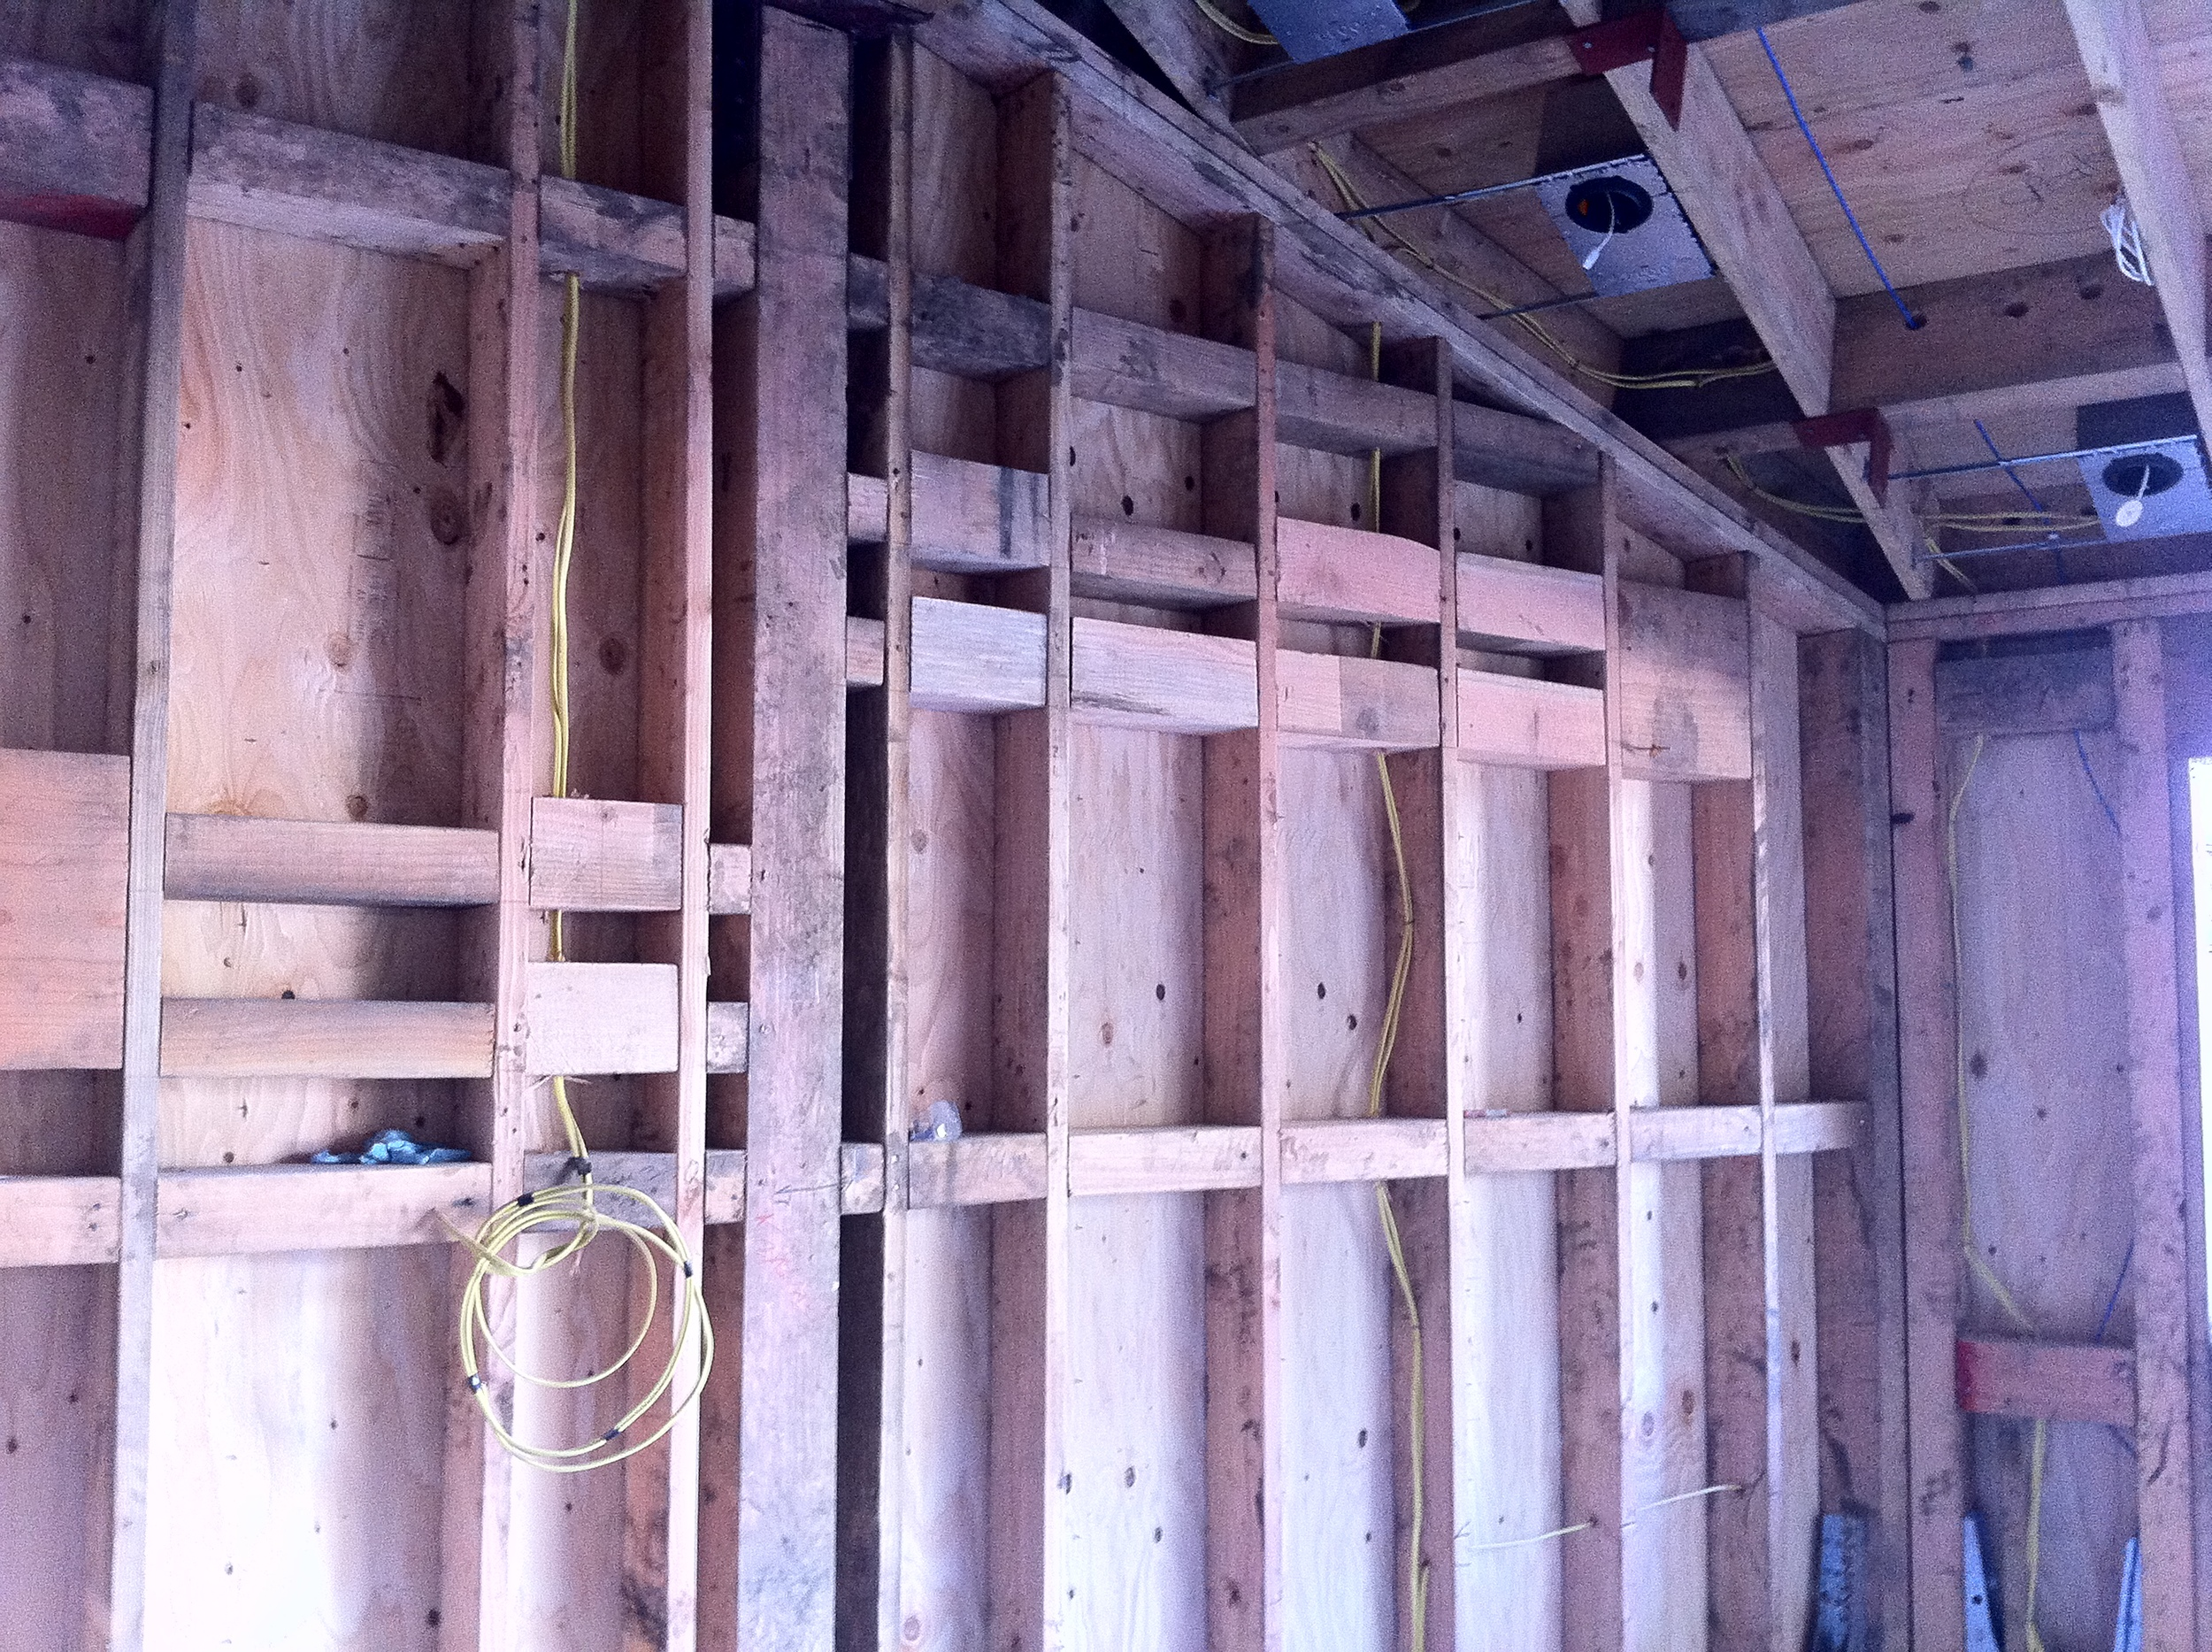 Blocking in place for various beams, recesses, and stonework.